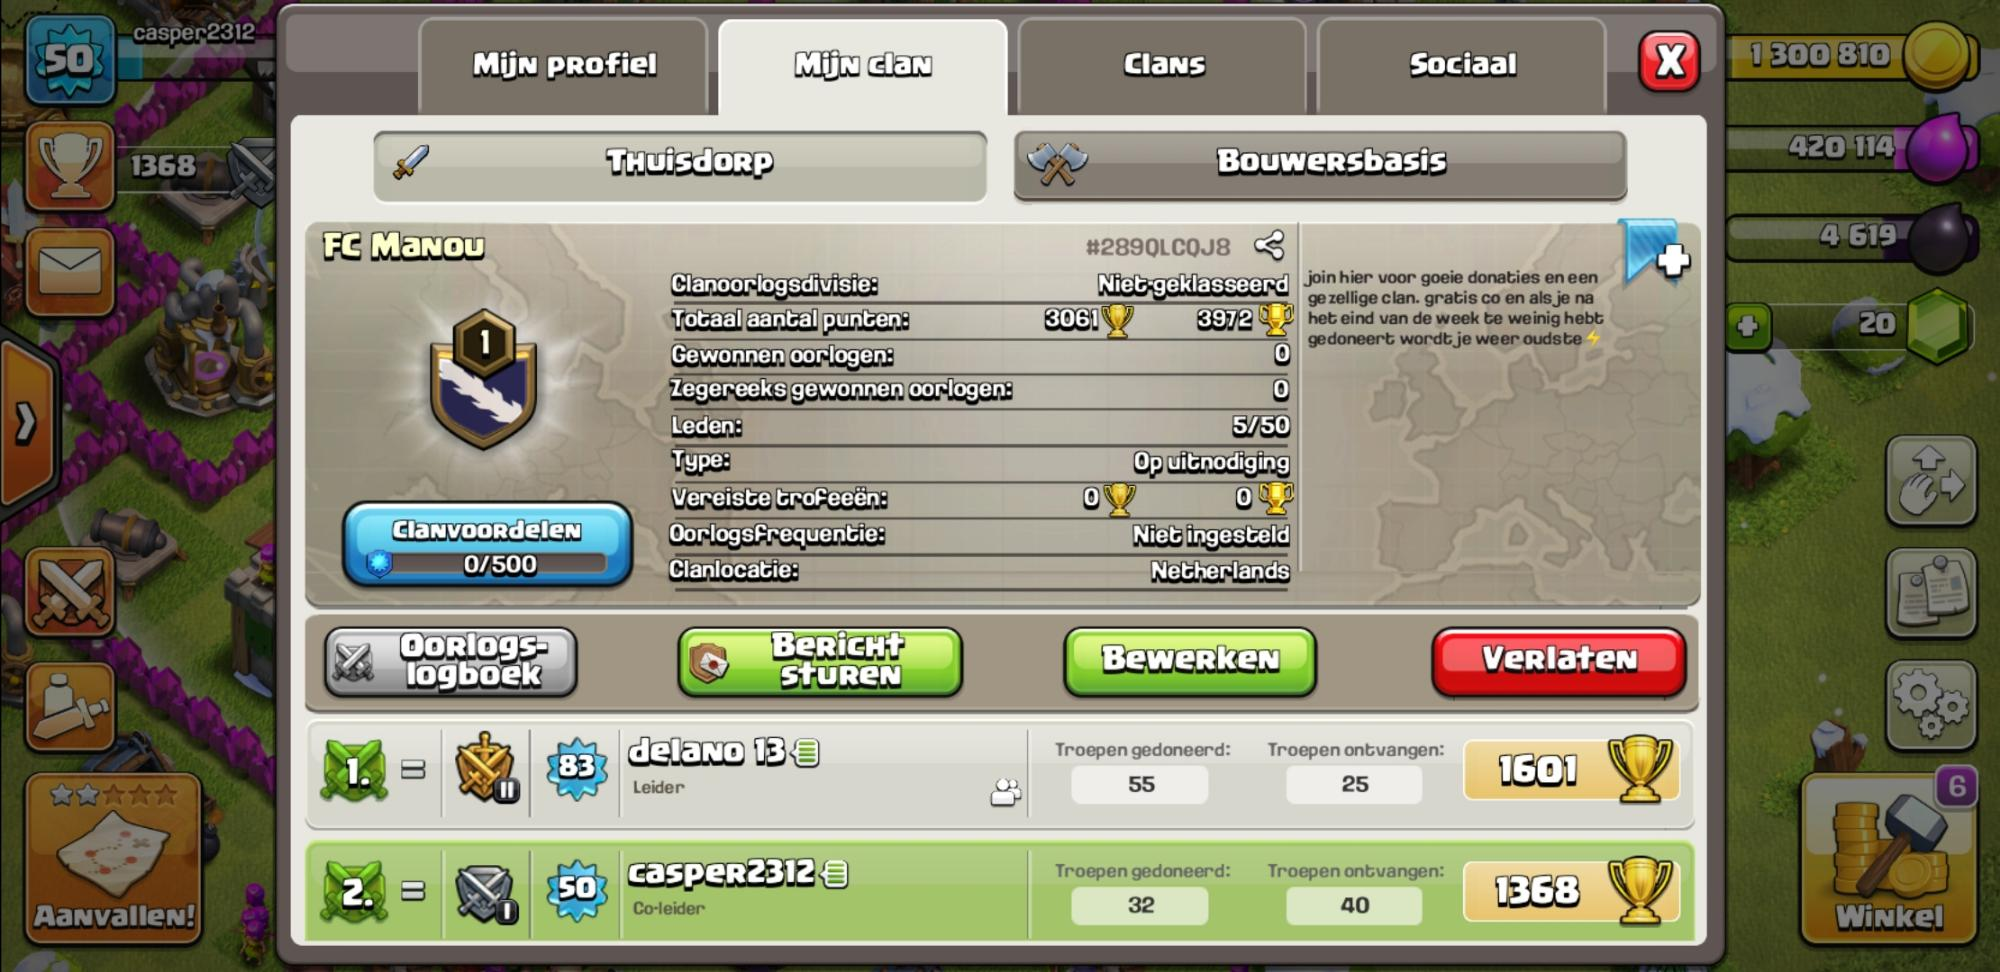 Join the clan for acrive war and good donations